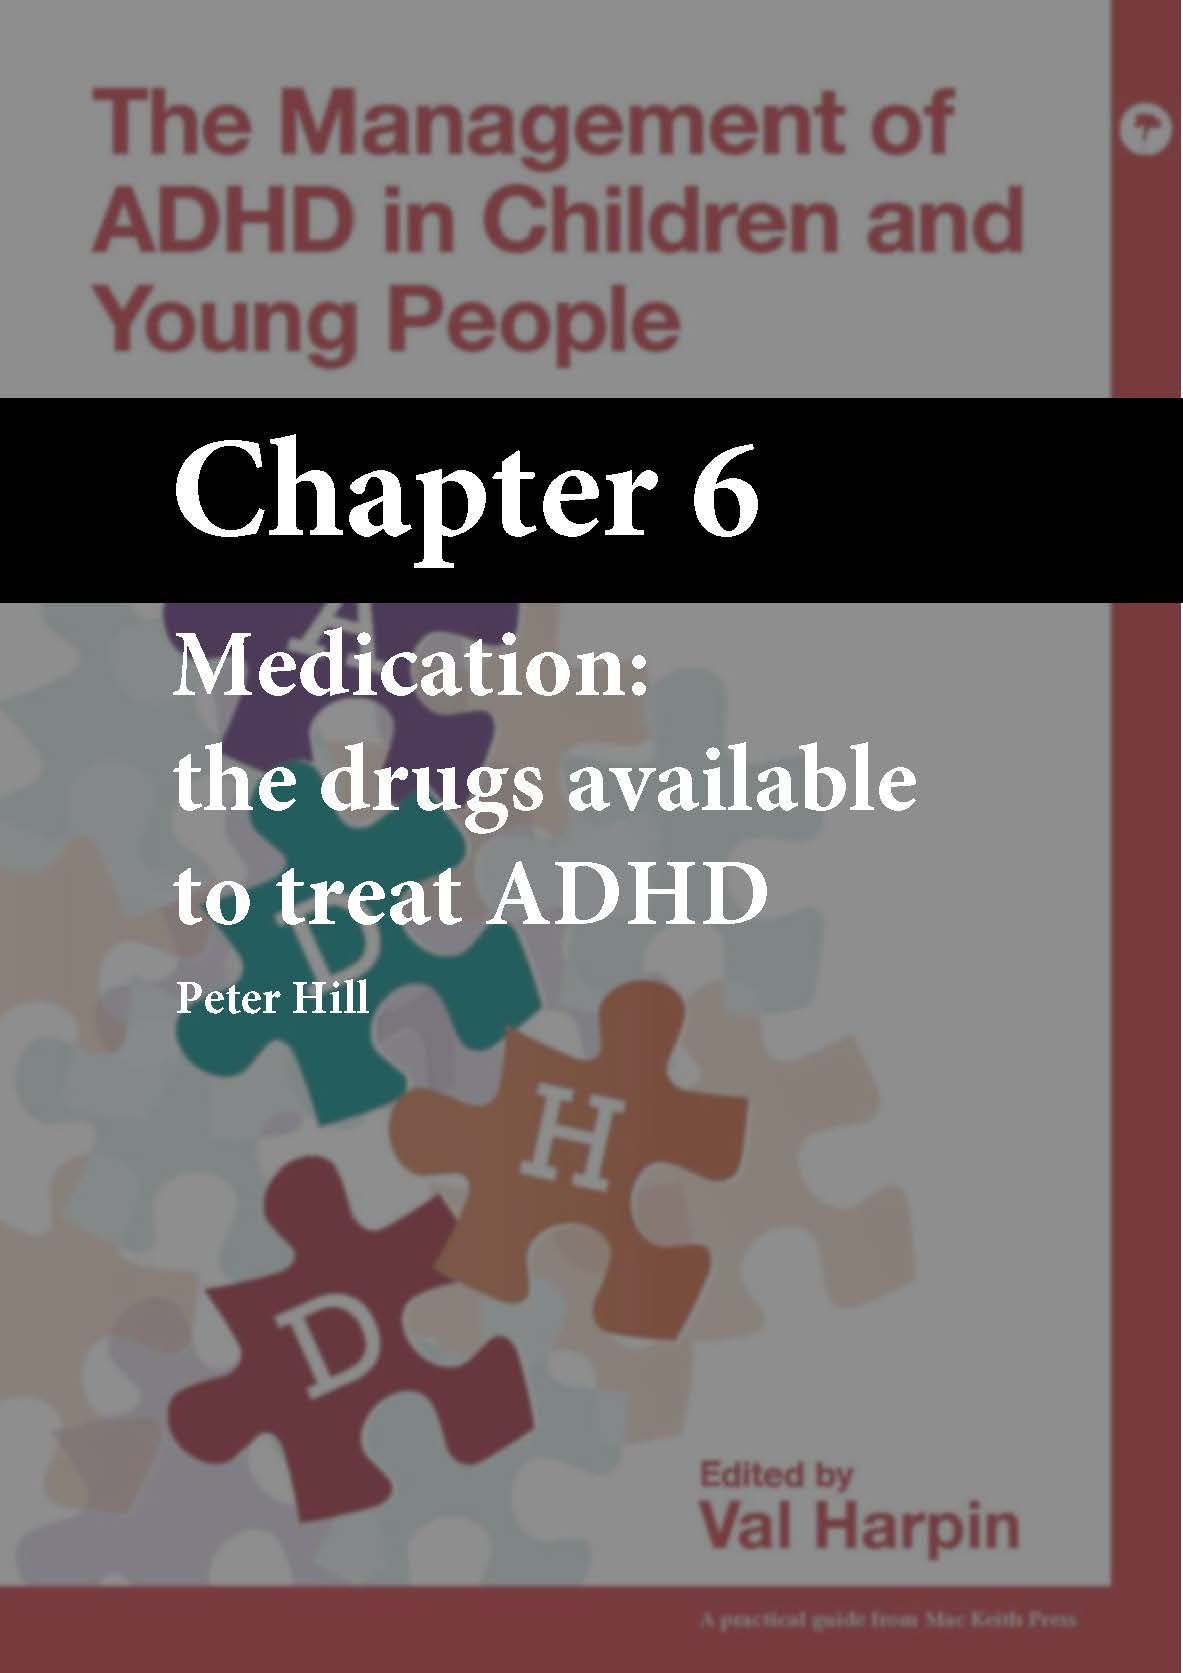 The Management of ADHD in Children and Young People, Harpin, Chapter 6 cover